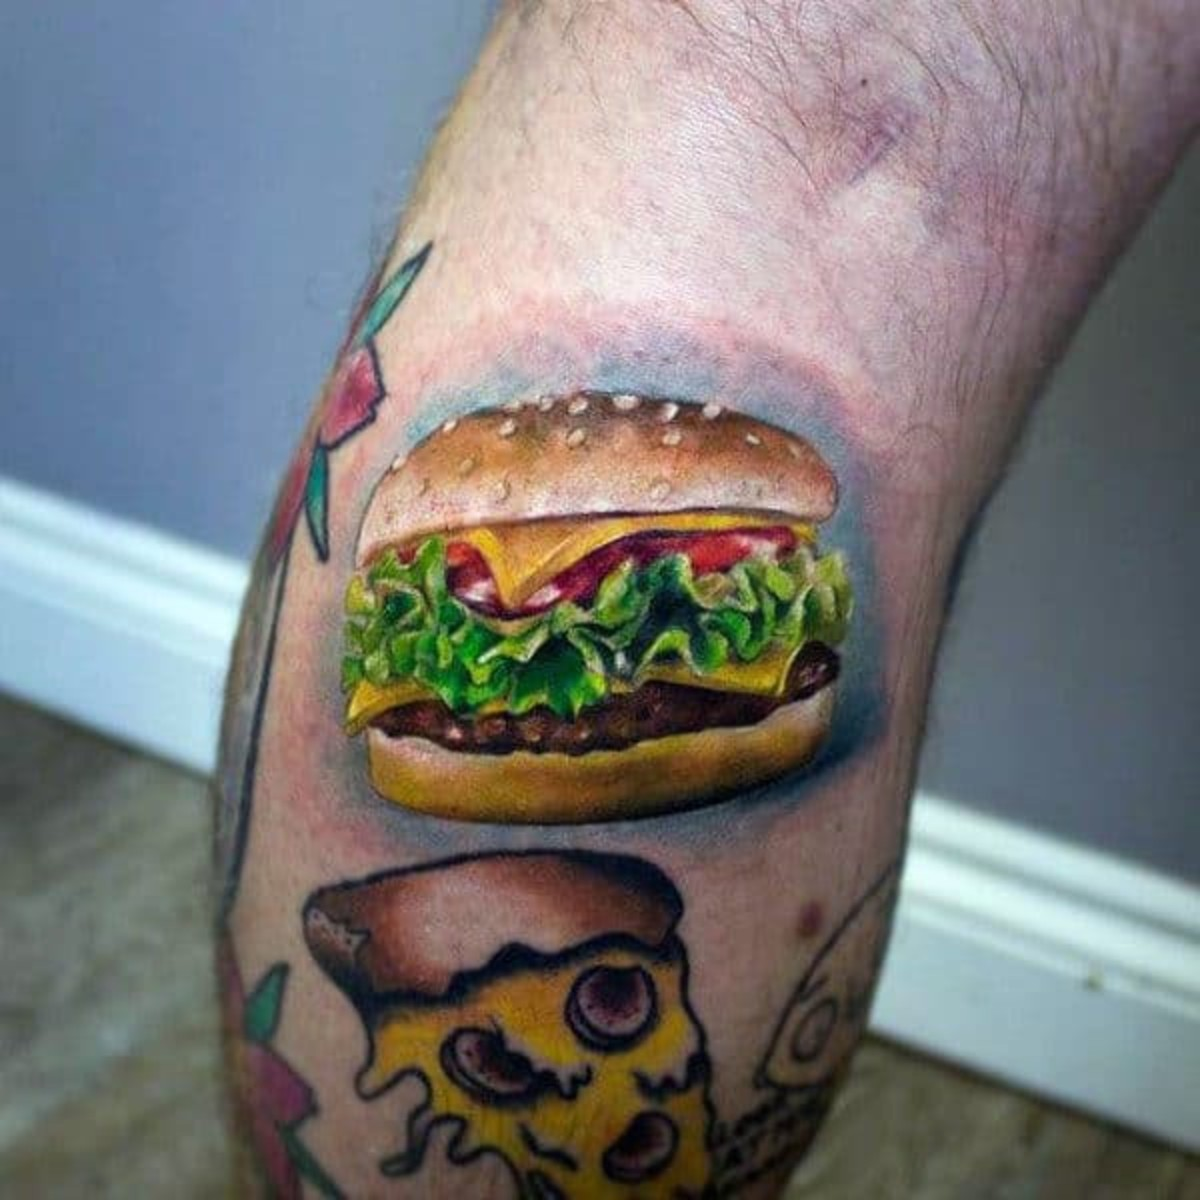 This guy's got it all—cheeseburger, pizza, Stewie...